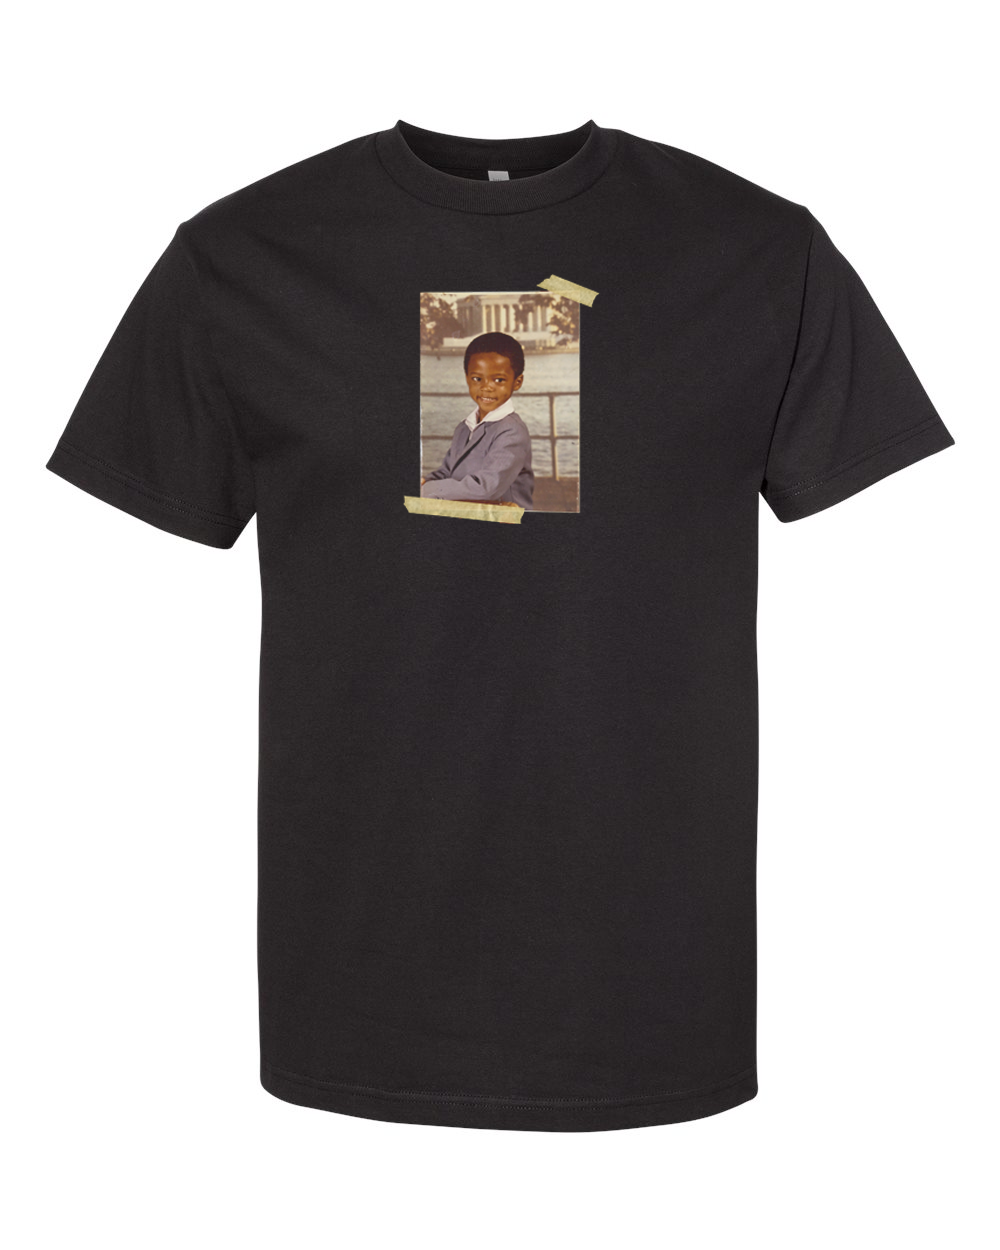 Papoose Photo - T-Shirt